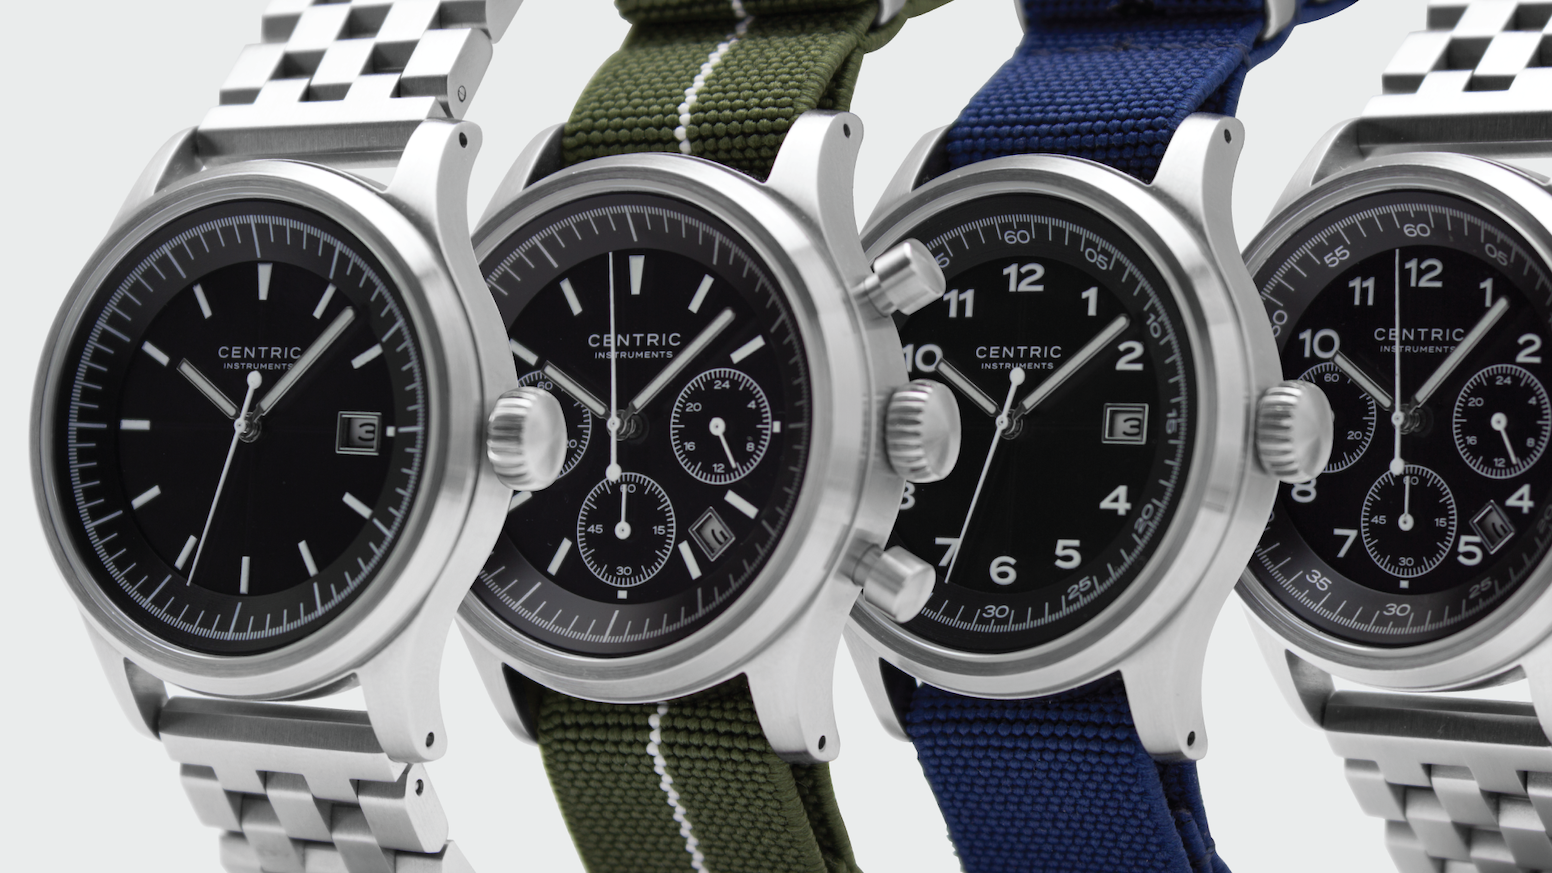 This new collection of sleek, utilitarian watches are powered by the sun, combining versatile style with long-lasting dependability.